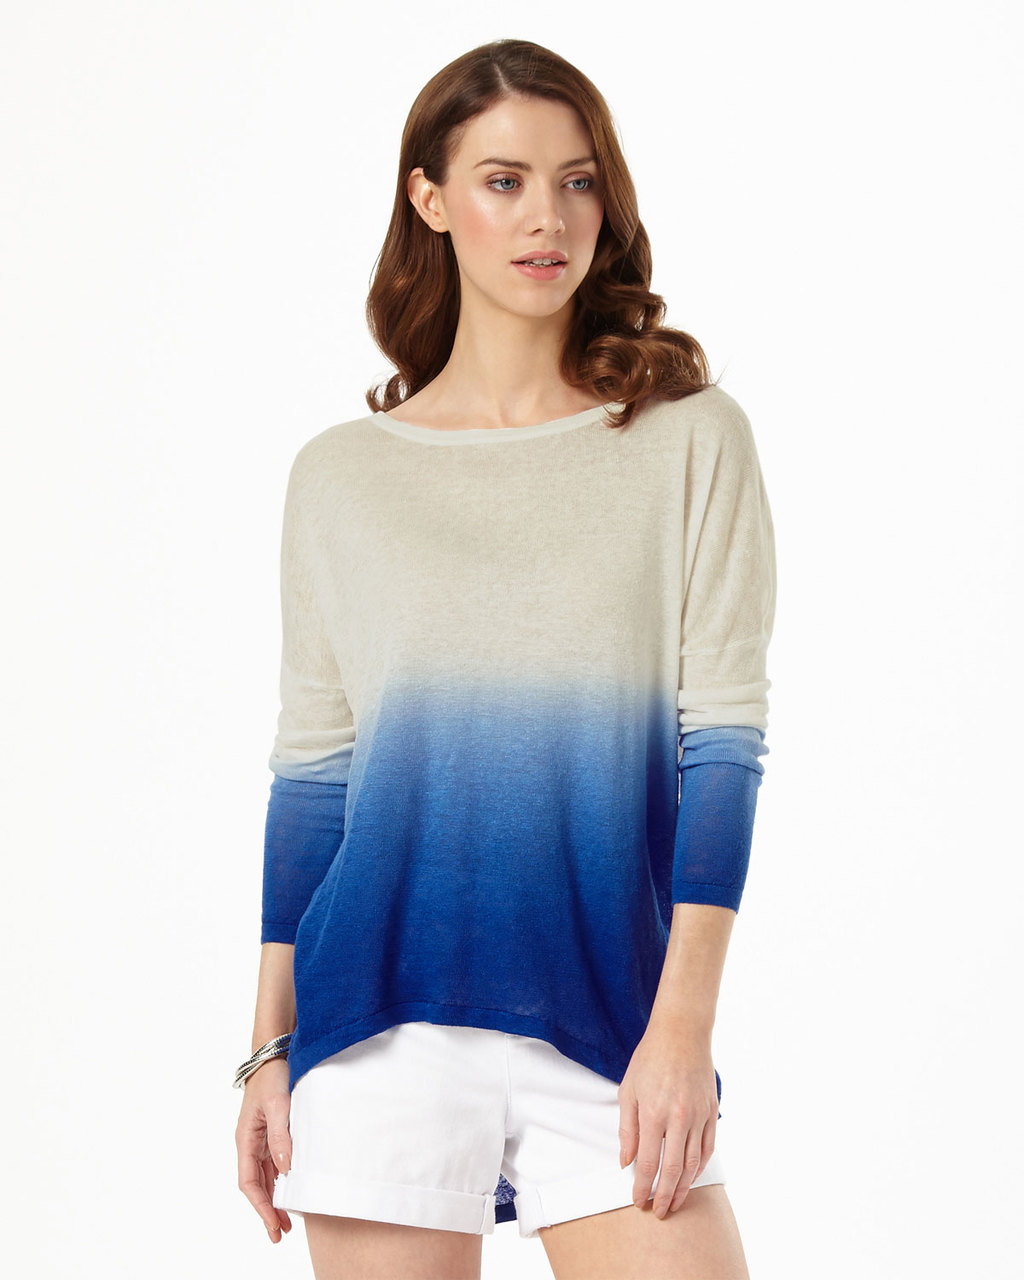 Dip Dye Elen Ellipse Jumper - neckline: round neck; length: below the bottom; style: tunic; predominant colour: ivory/cream; secondary colour: royal blue; occasions: casual; fibres: linen - 100%; fit: loose; sleeve length: long sleeve; sleeve style: standard; texture group: knits/crochet; pattern type: fabric; pattern: colourblock; multicoloured: multicoloured; season: s/s 2016; wardrobe: highlight